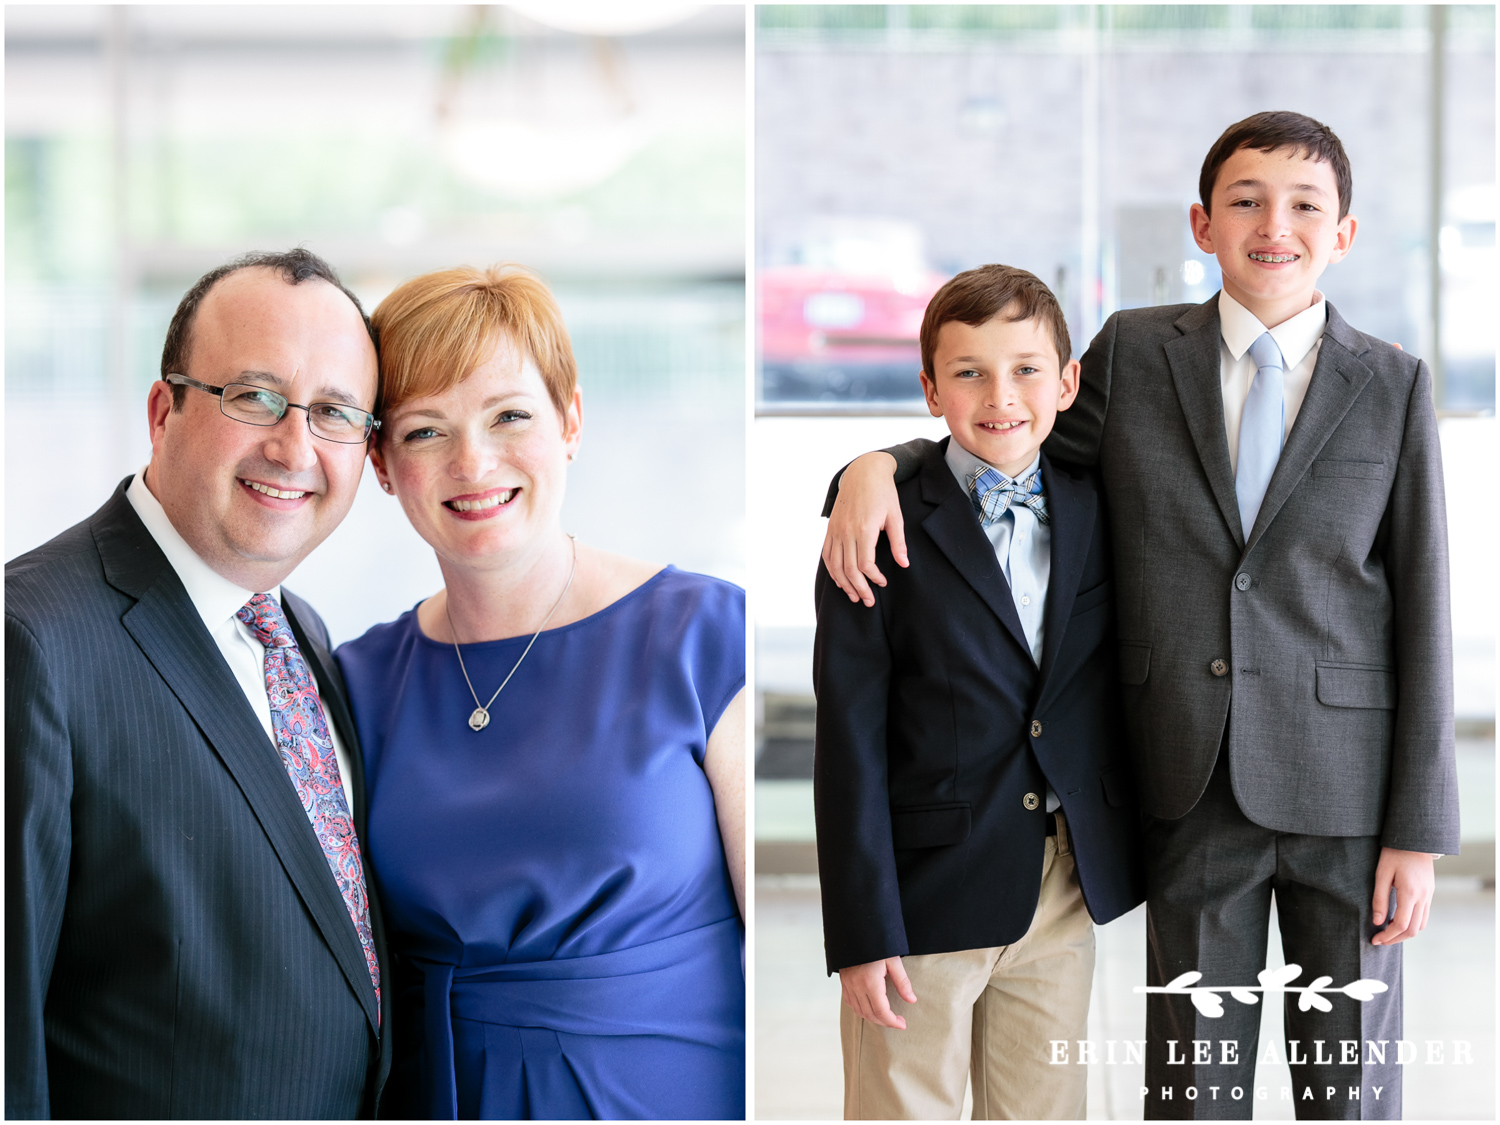 Bar_Mitzvah_with_brother